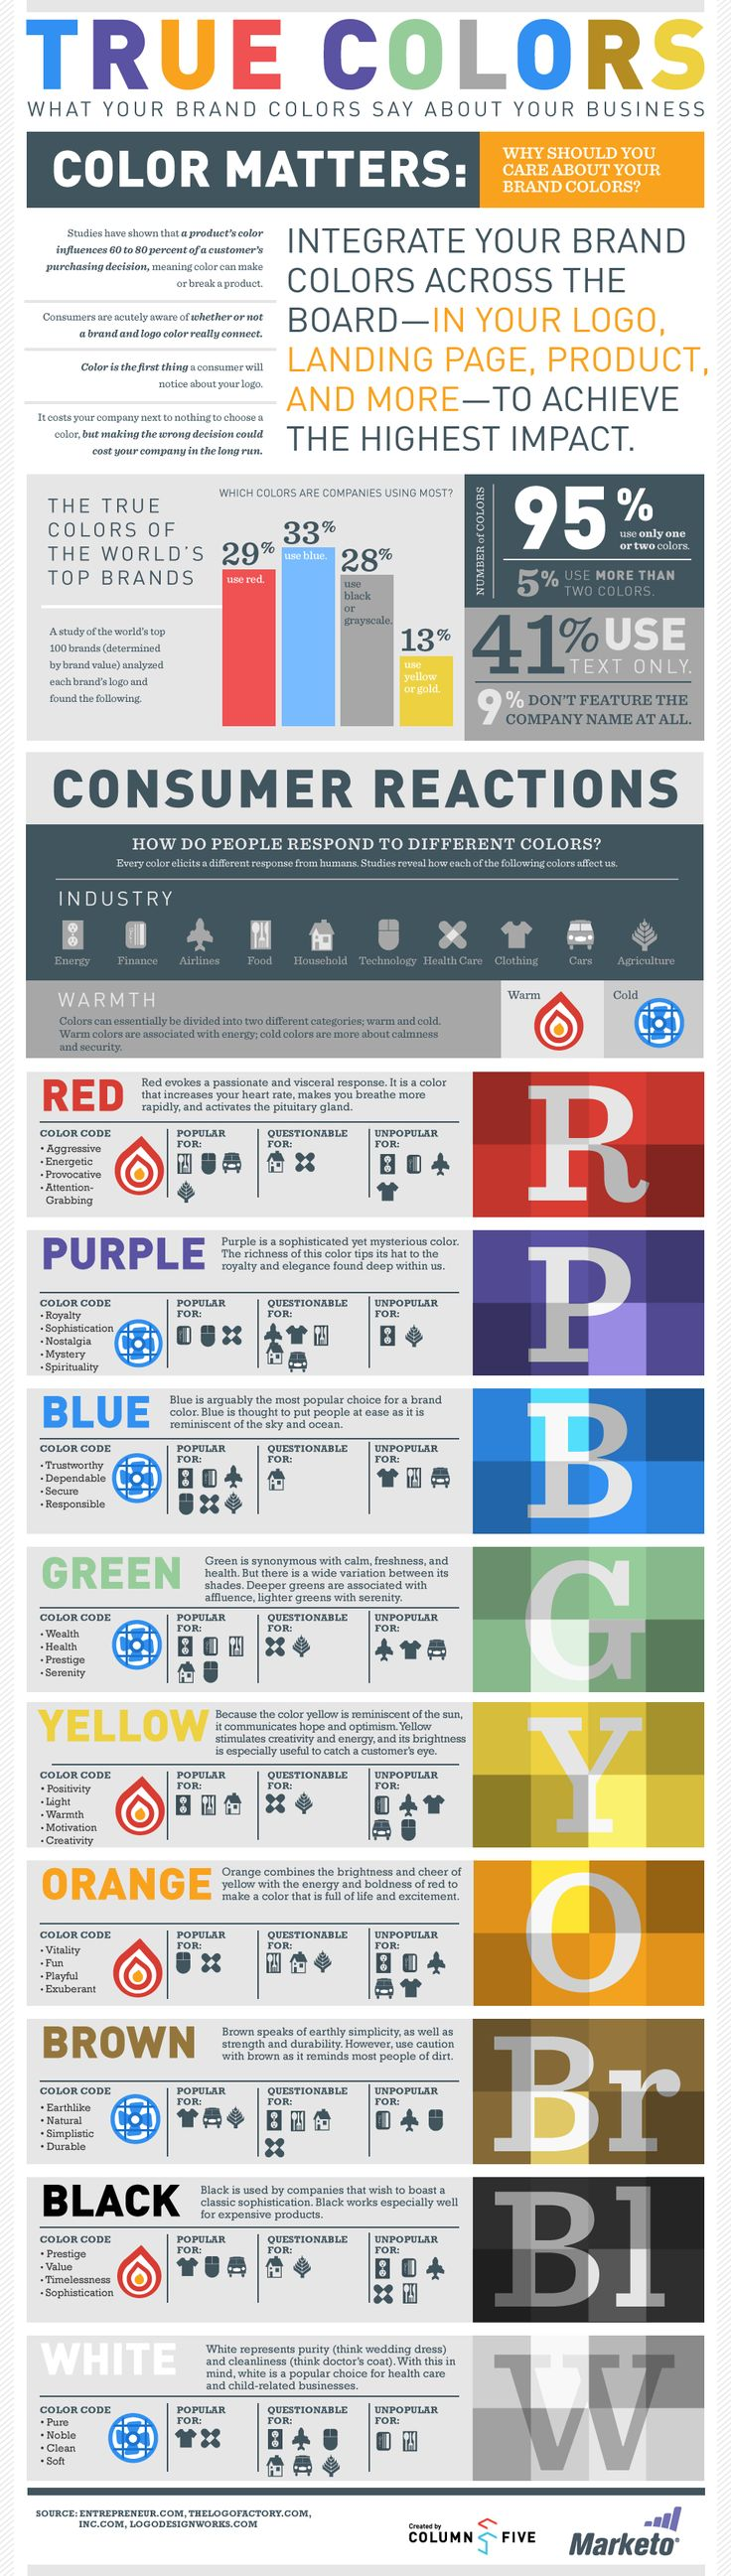 True-Colors-Infographic.png (960×3384)